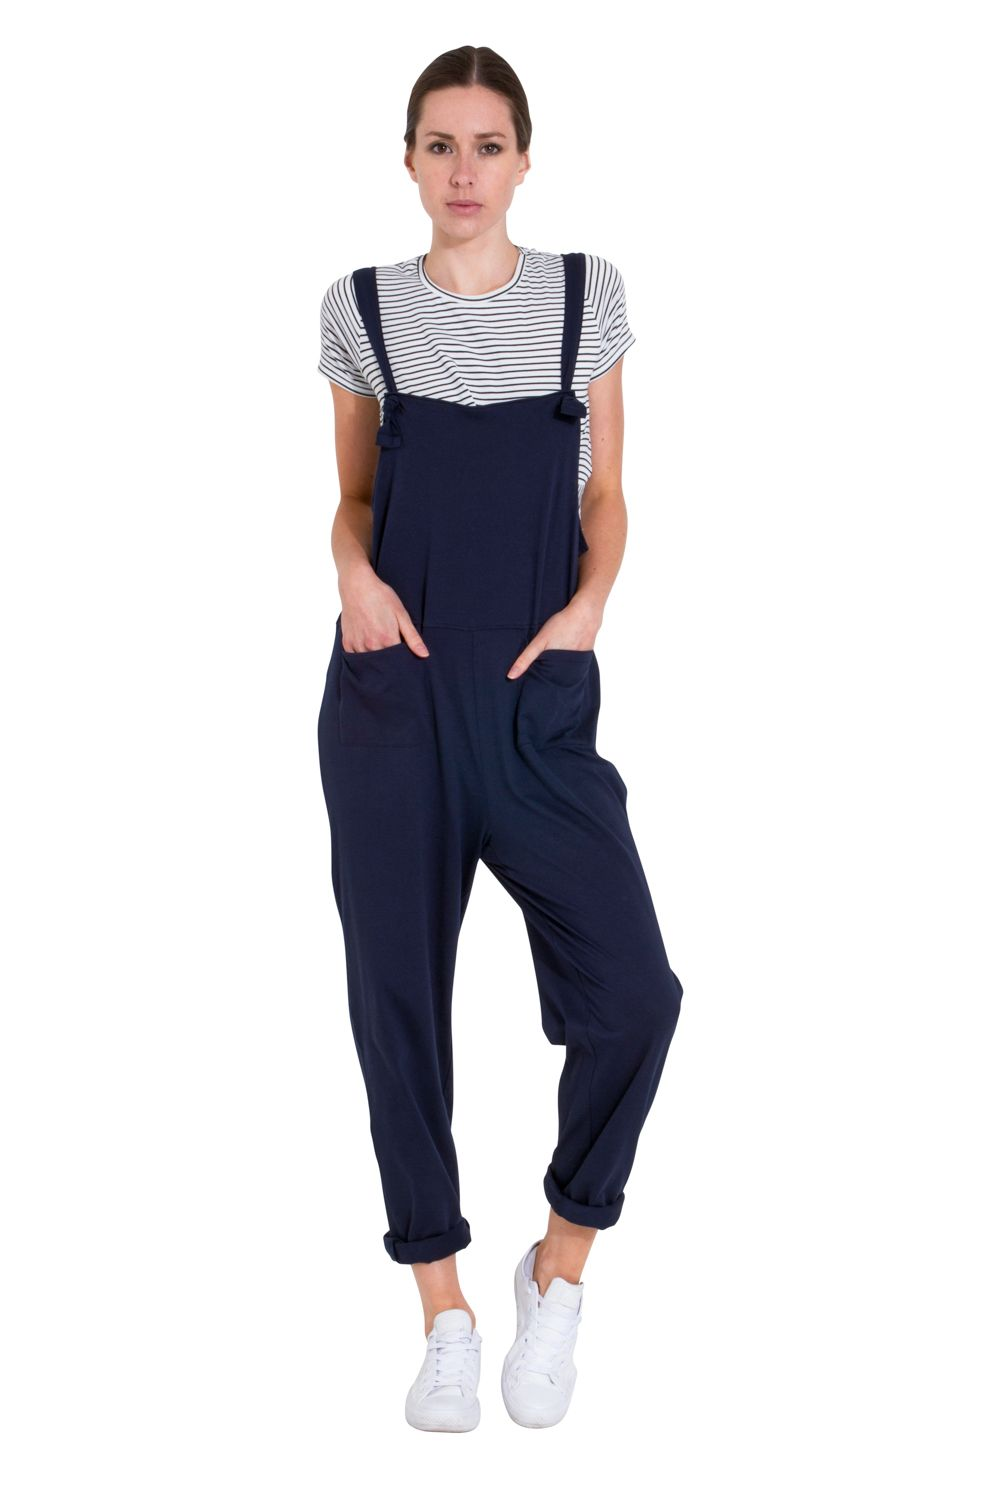 Ladies Jumpsuit Navy All-in-one Overall Playsuit One size UK 8-12